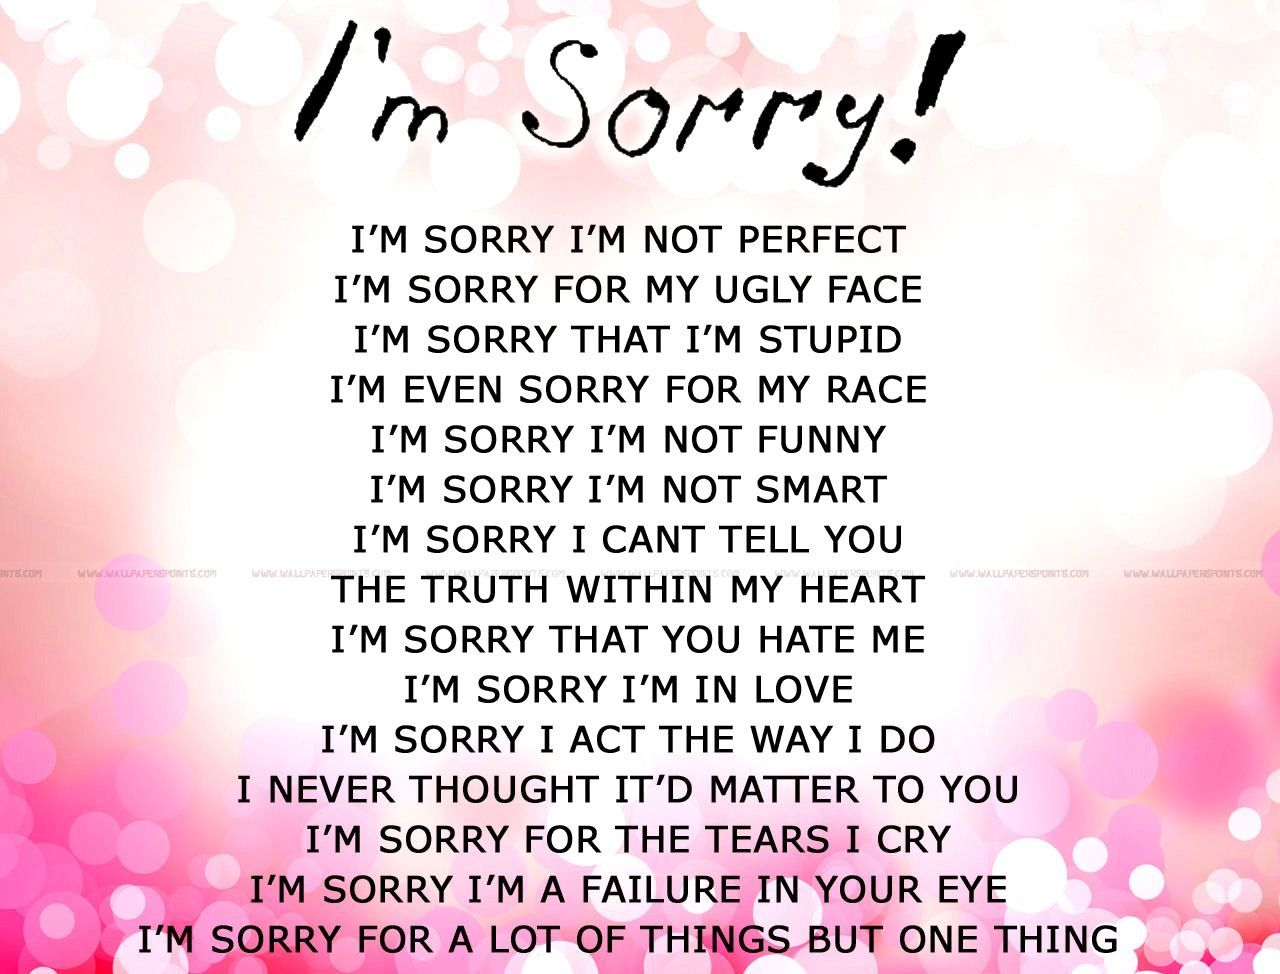 Apology Card Templates 10 Free Printable Word Pdf Within Sorry Card Template Cumed Org Apologizing Quotes Sorry Cards Apology Cards